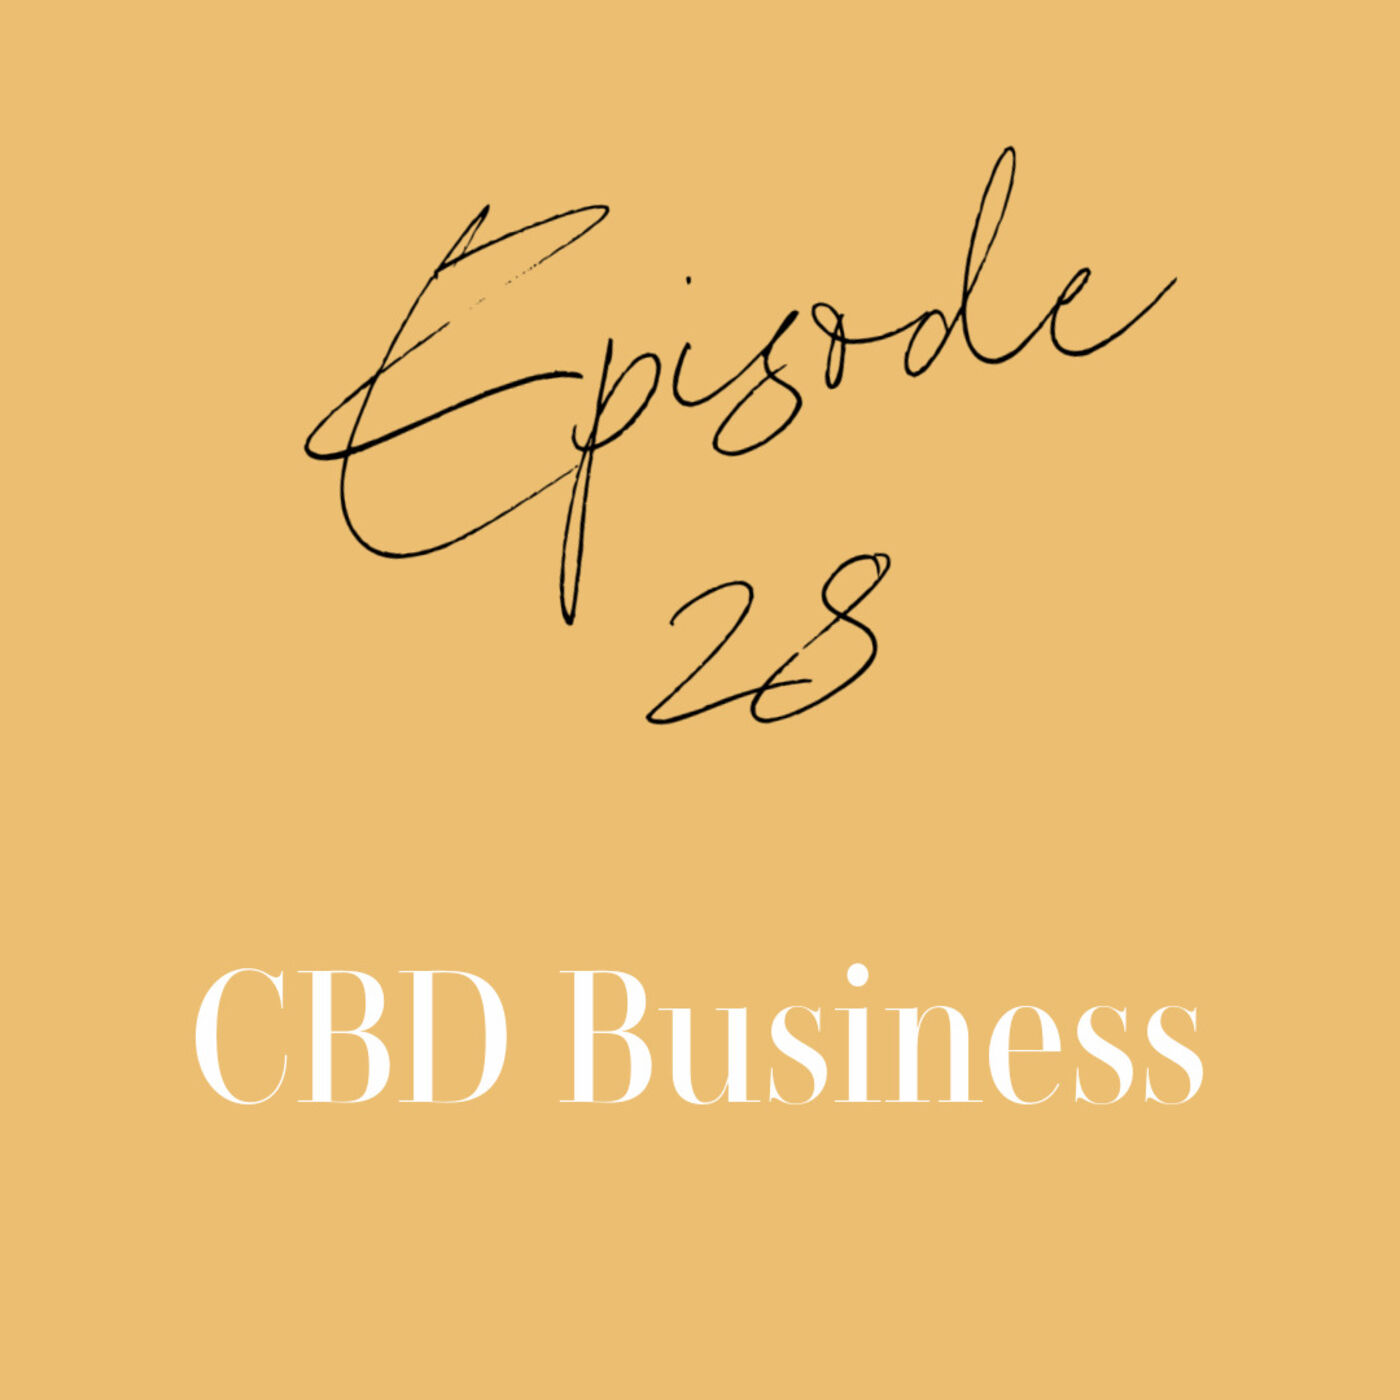 Episode 28: CBD Business